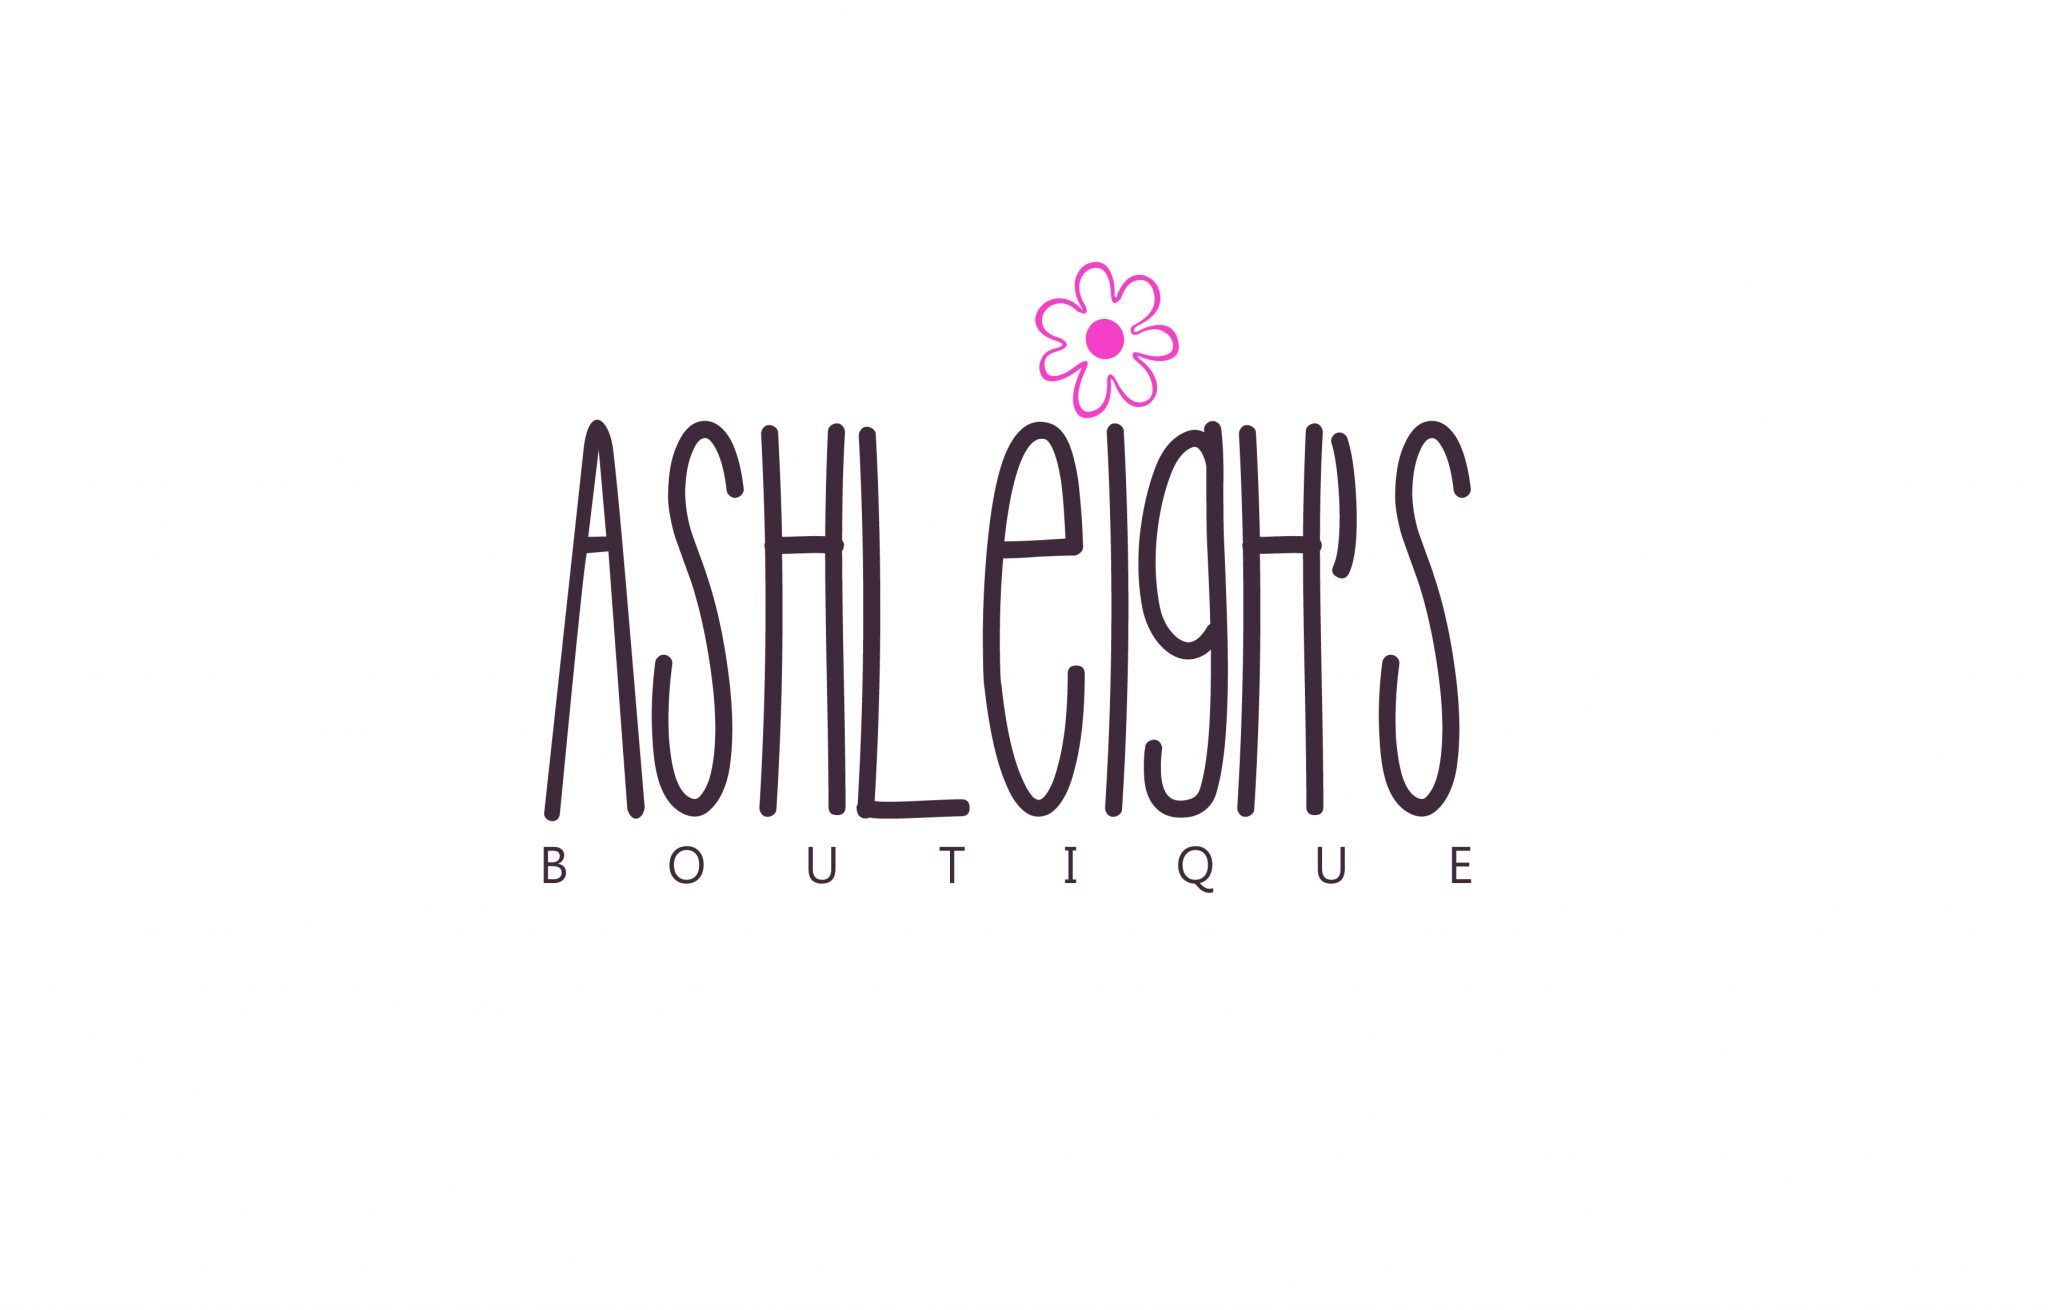 Ashleigh's Boutique